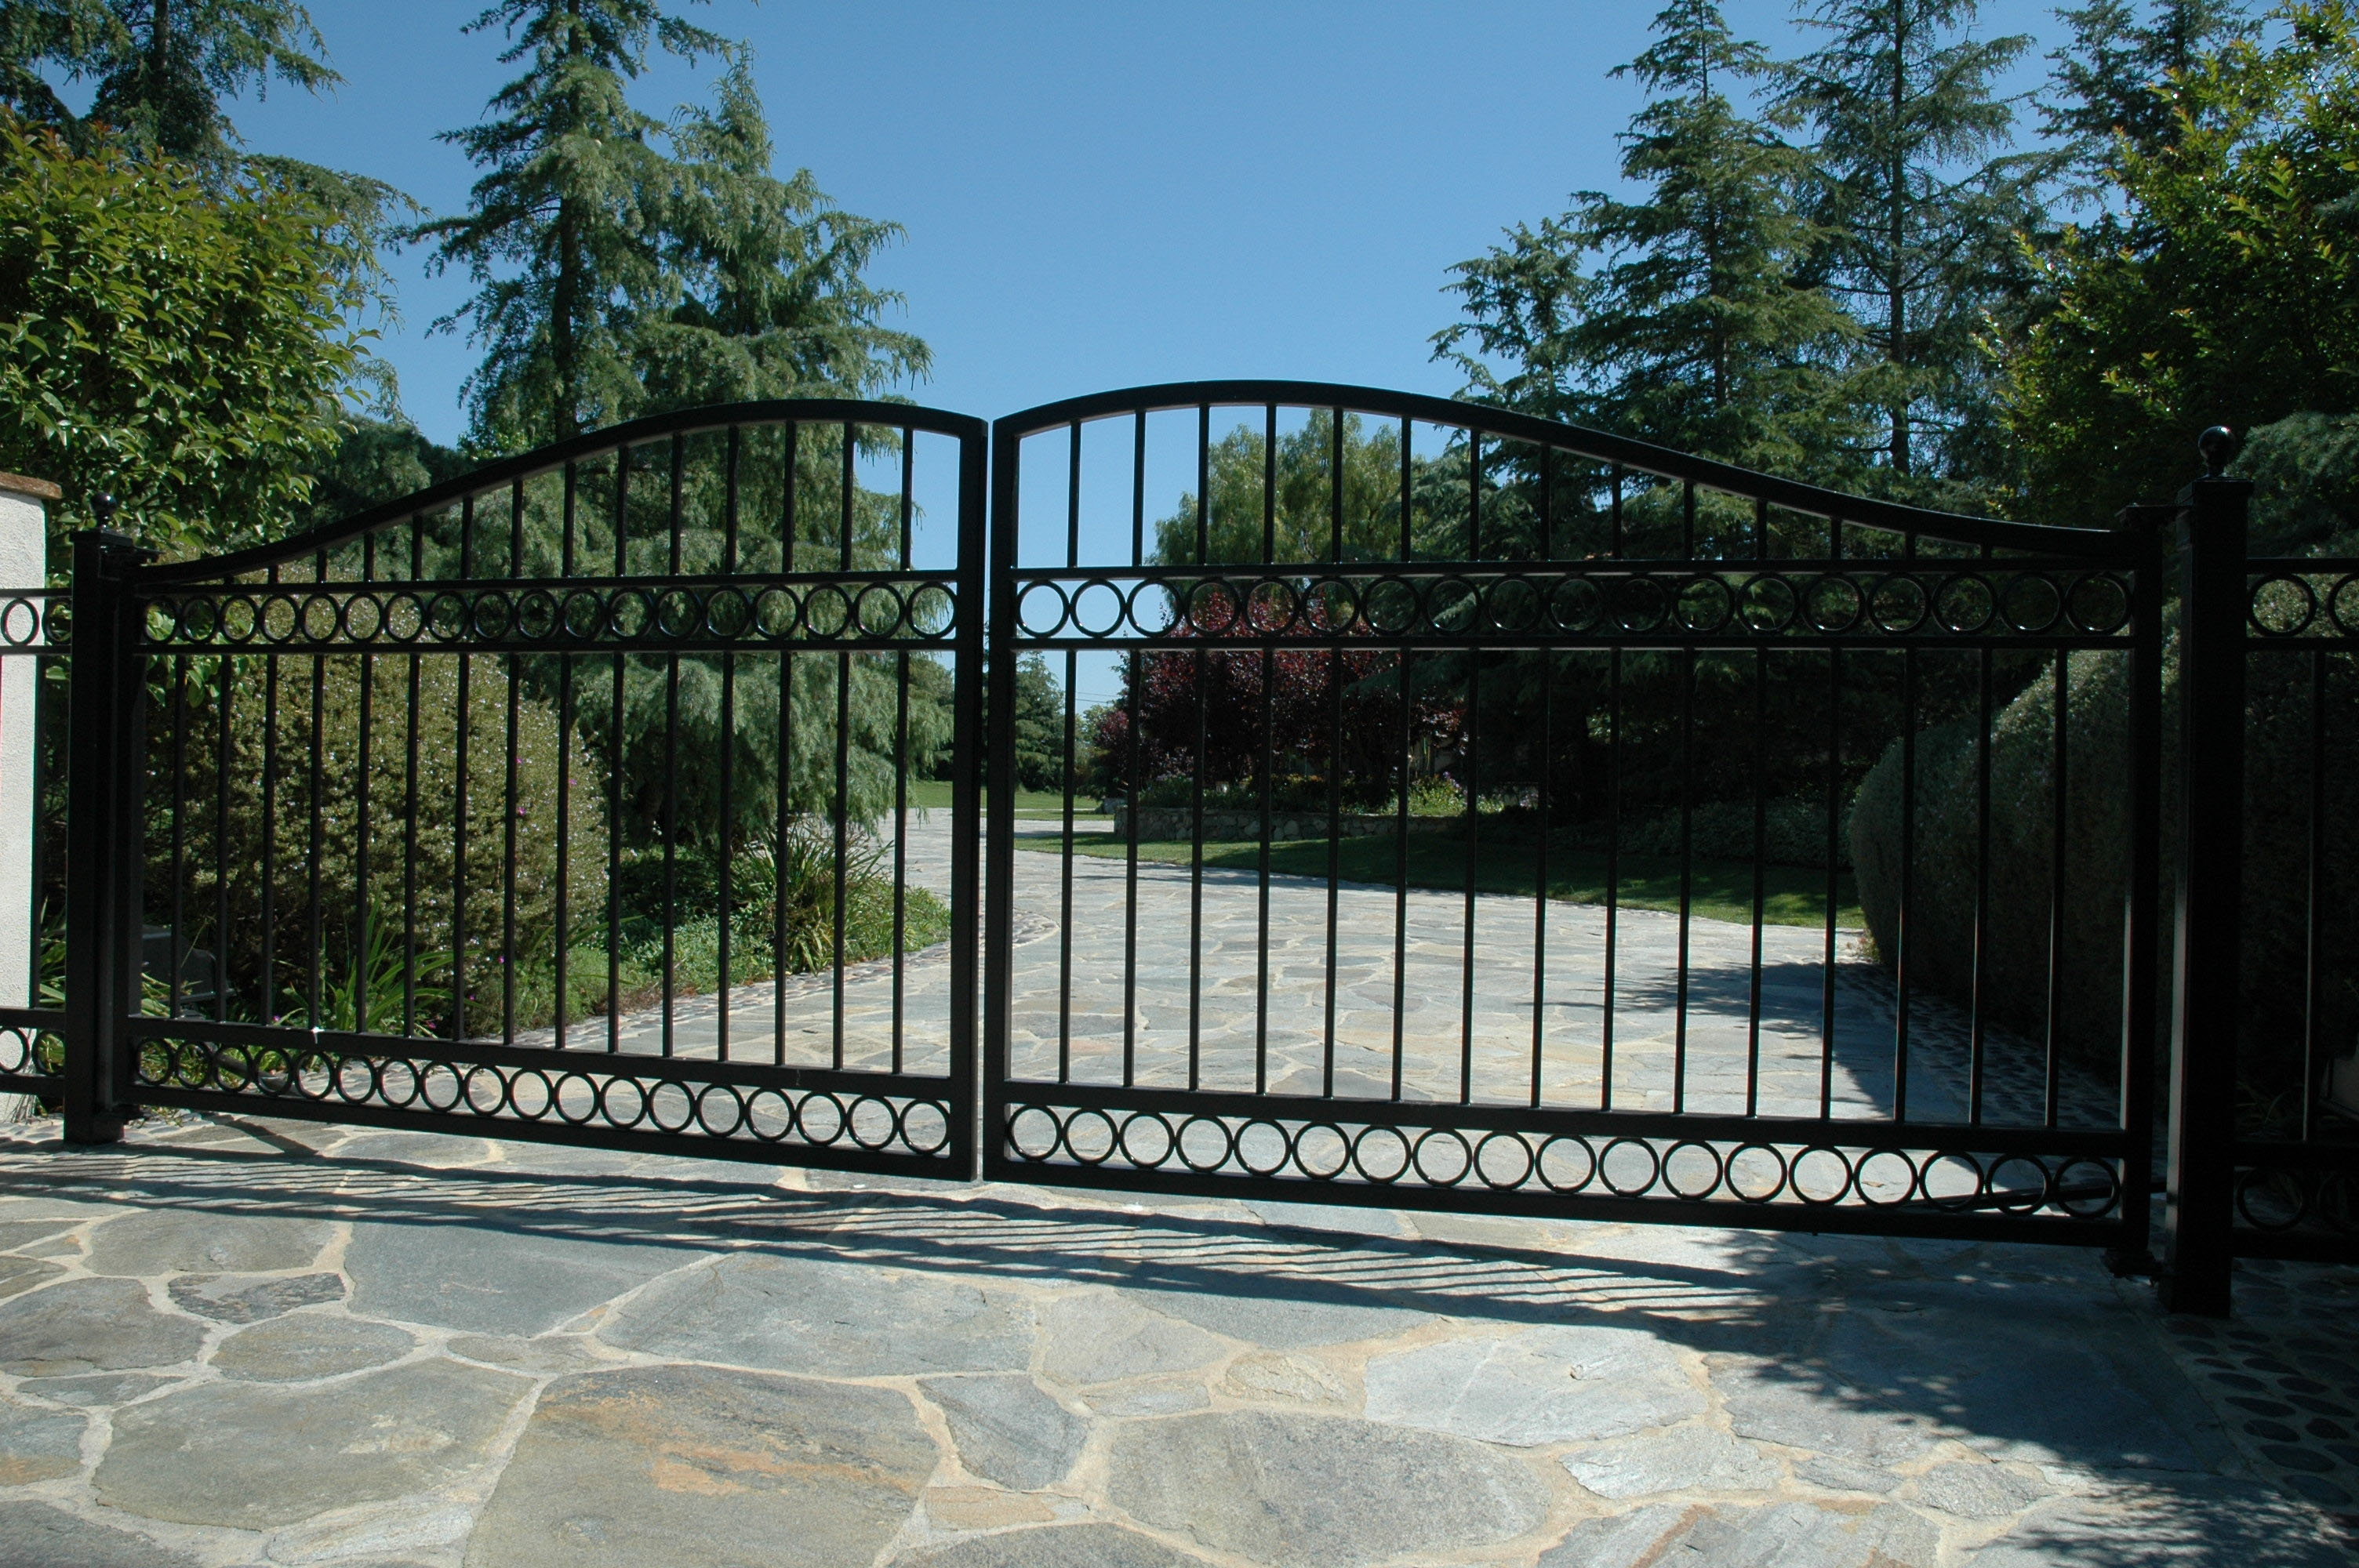 Wrought Iron Gates: Gate Photos - Wrought Iron, Wood & Iron Gates.